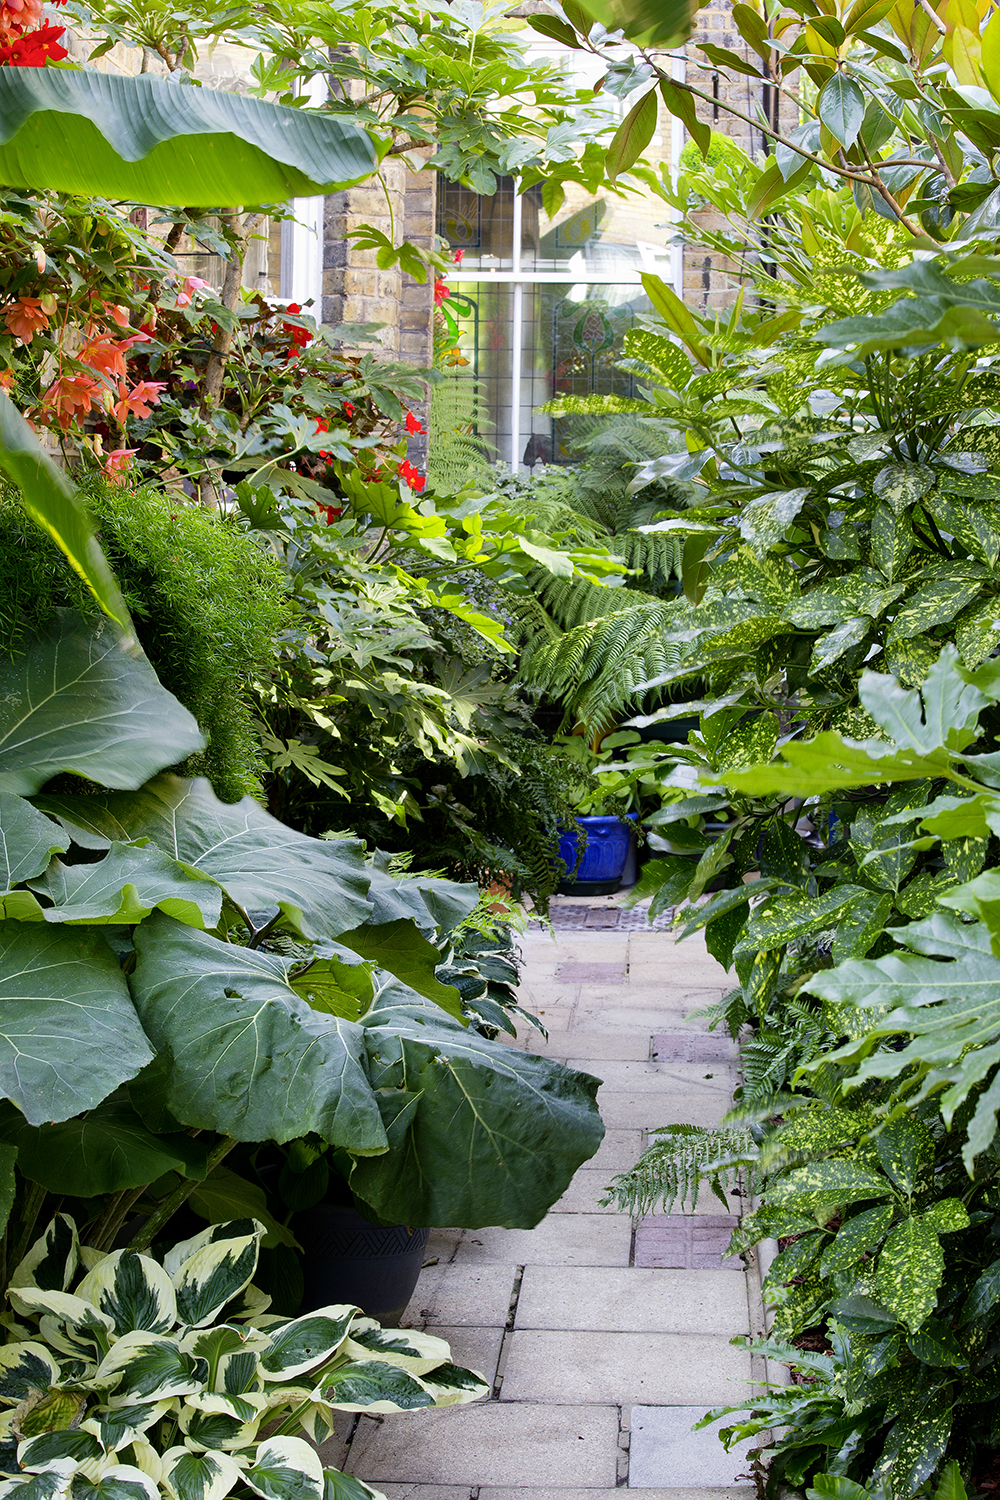 Hostas, spotted laurel (Aucuba japonica), Petasites japonica gigantea and Fatsia japonica enjoy the shady side passage